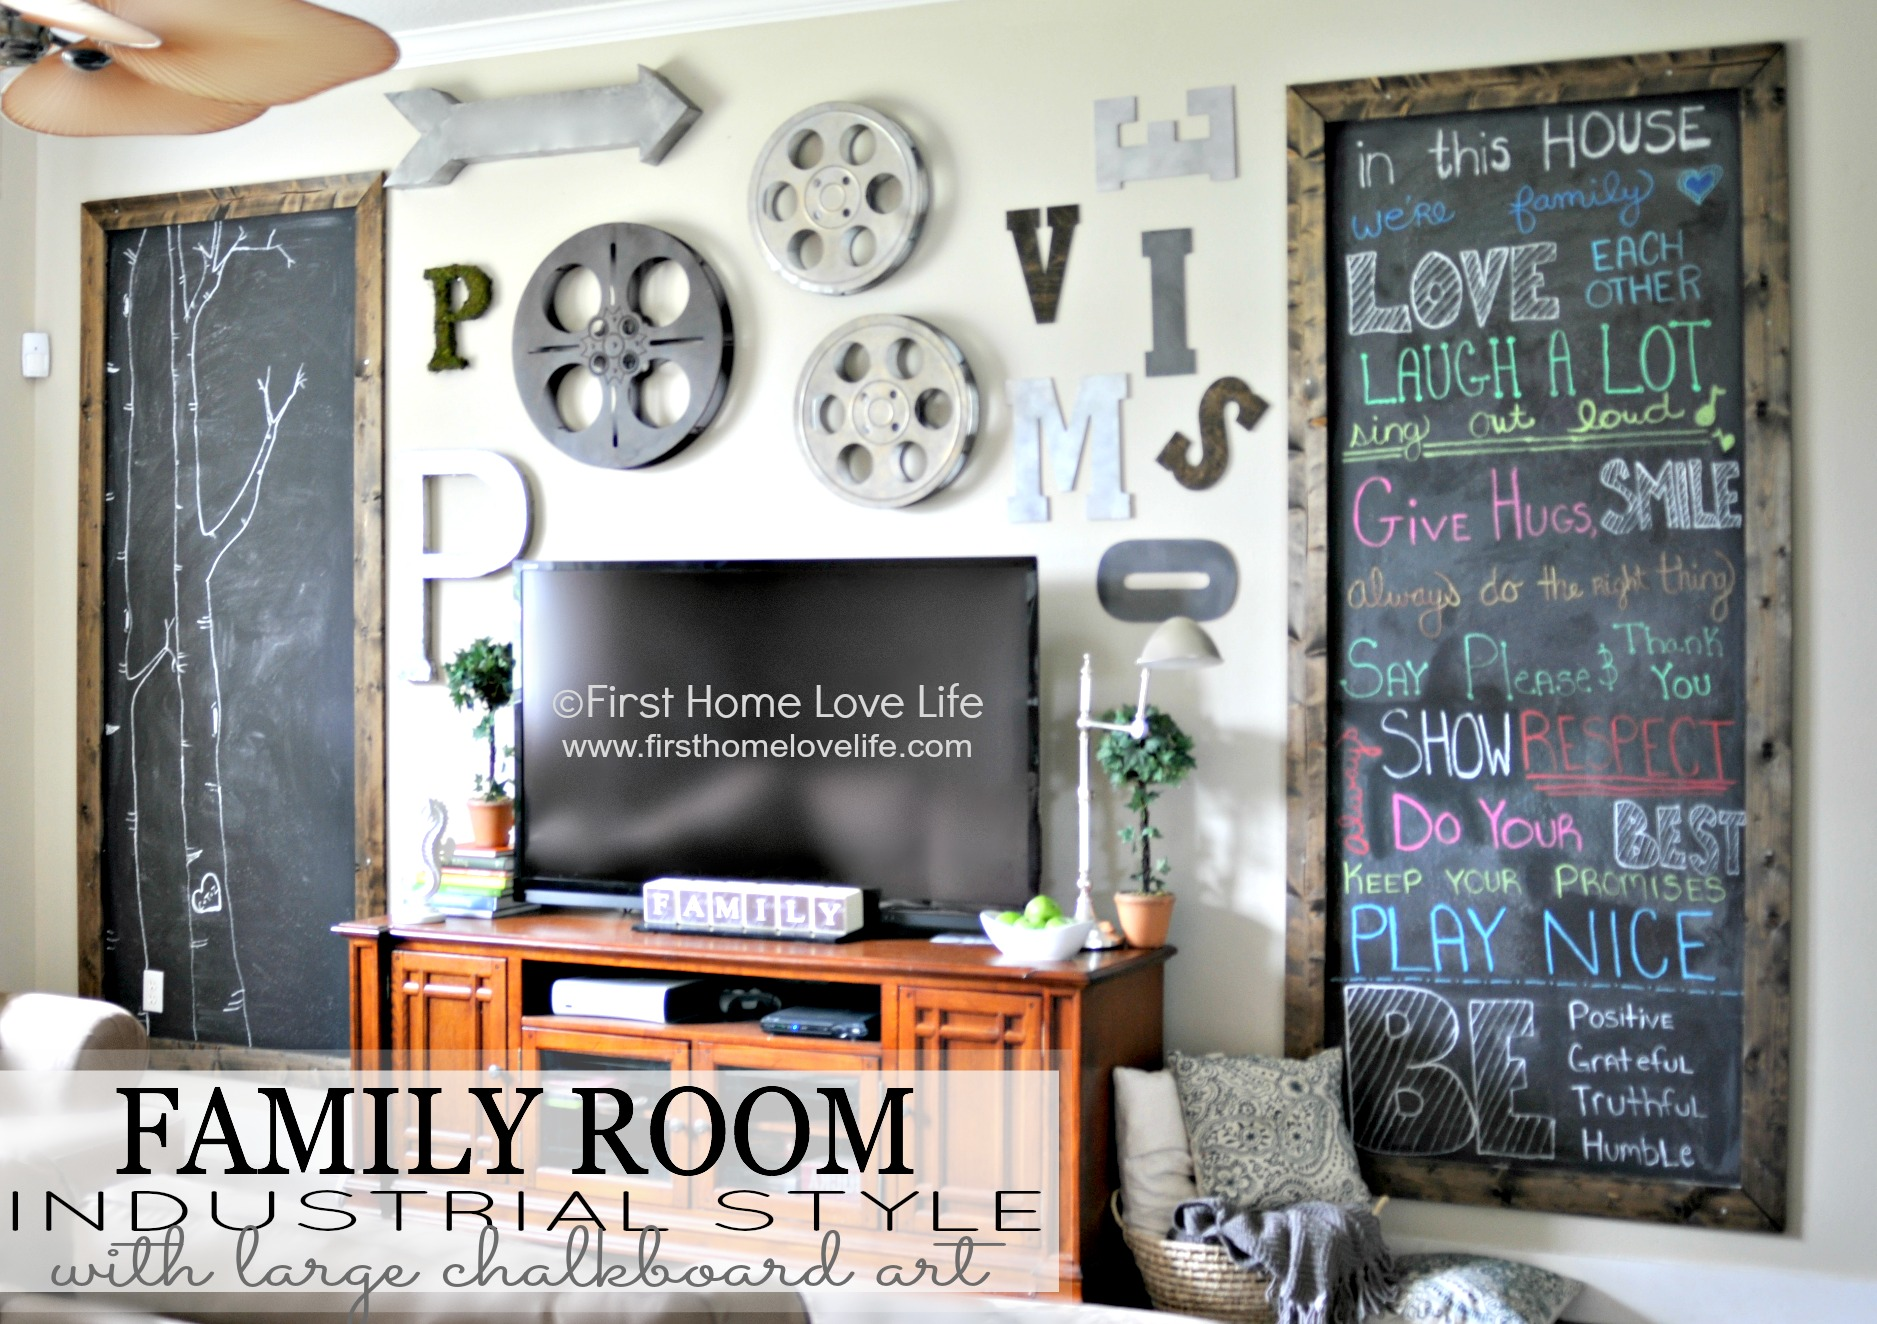 Industrial Wall Decor Ideas : Industrial style family room gallery wall with chalkboard